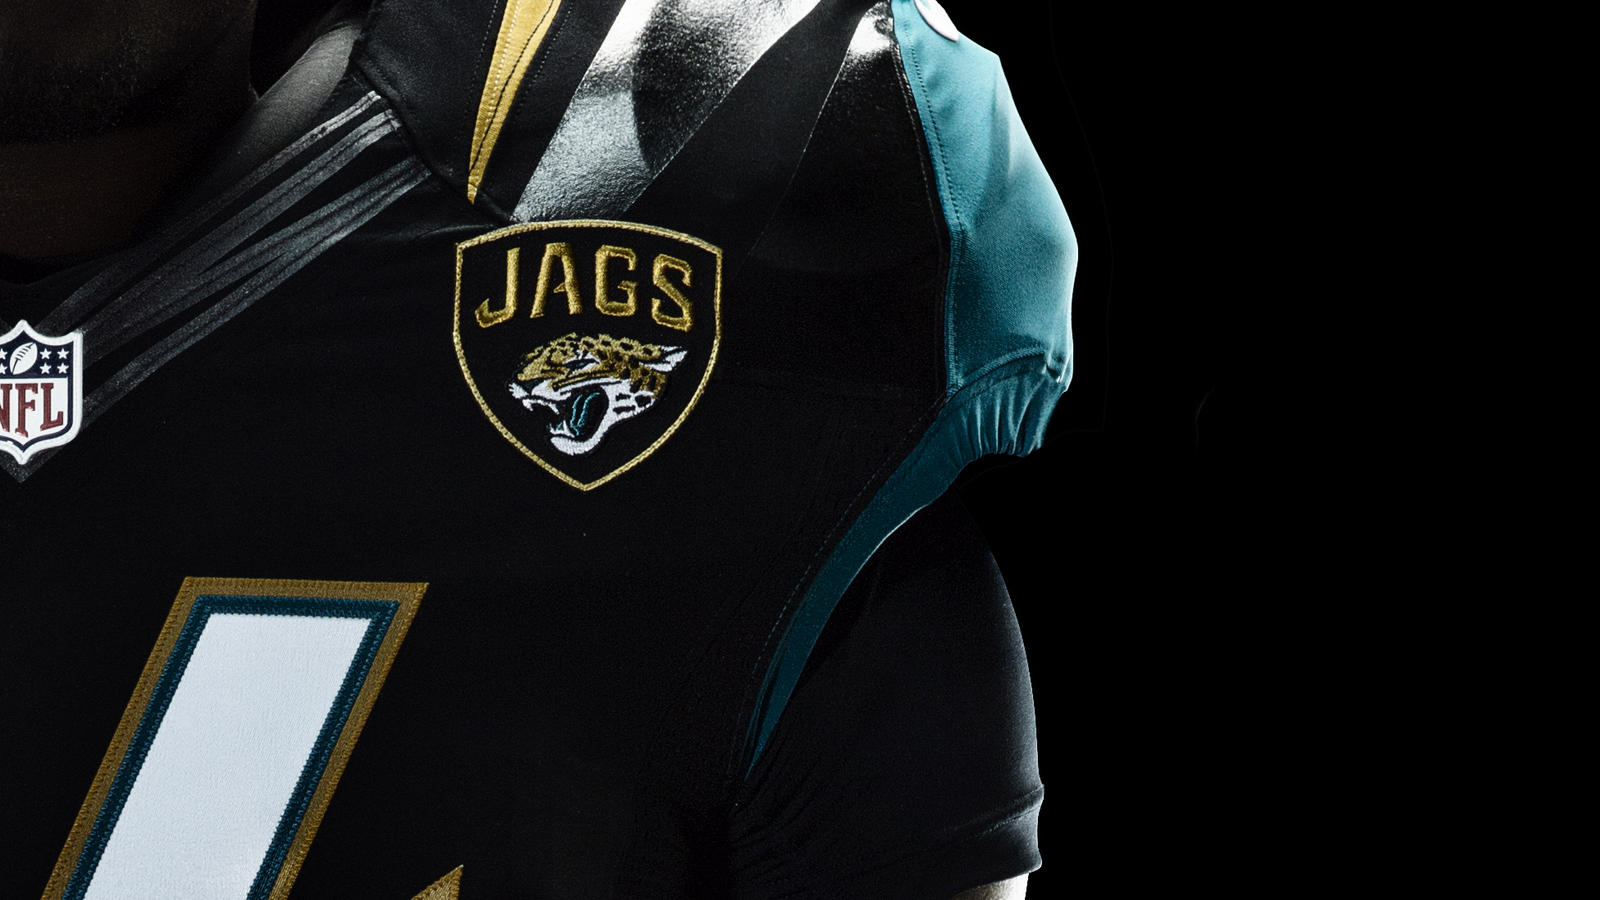 jaguars-blackmon-nfl-nike-elite-51-uniform-patch-shoulder